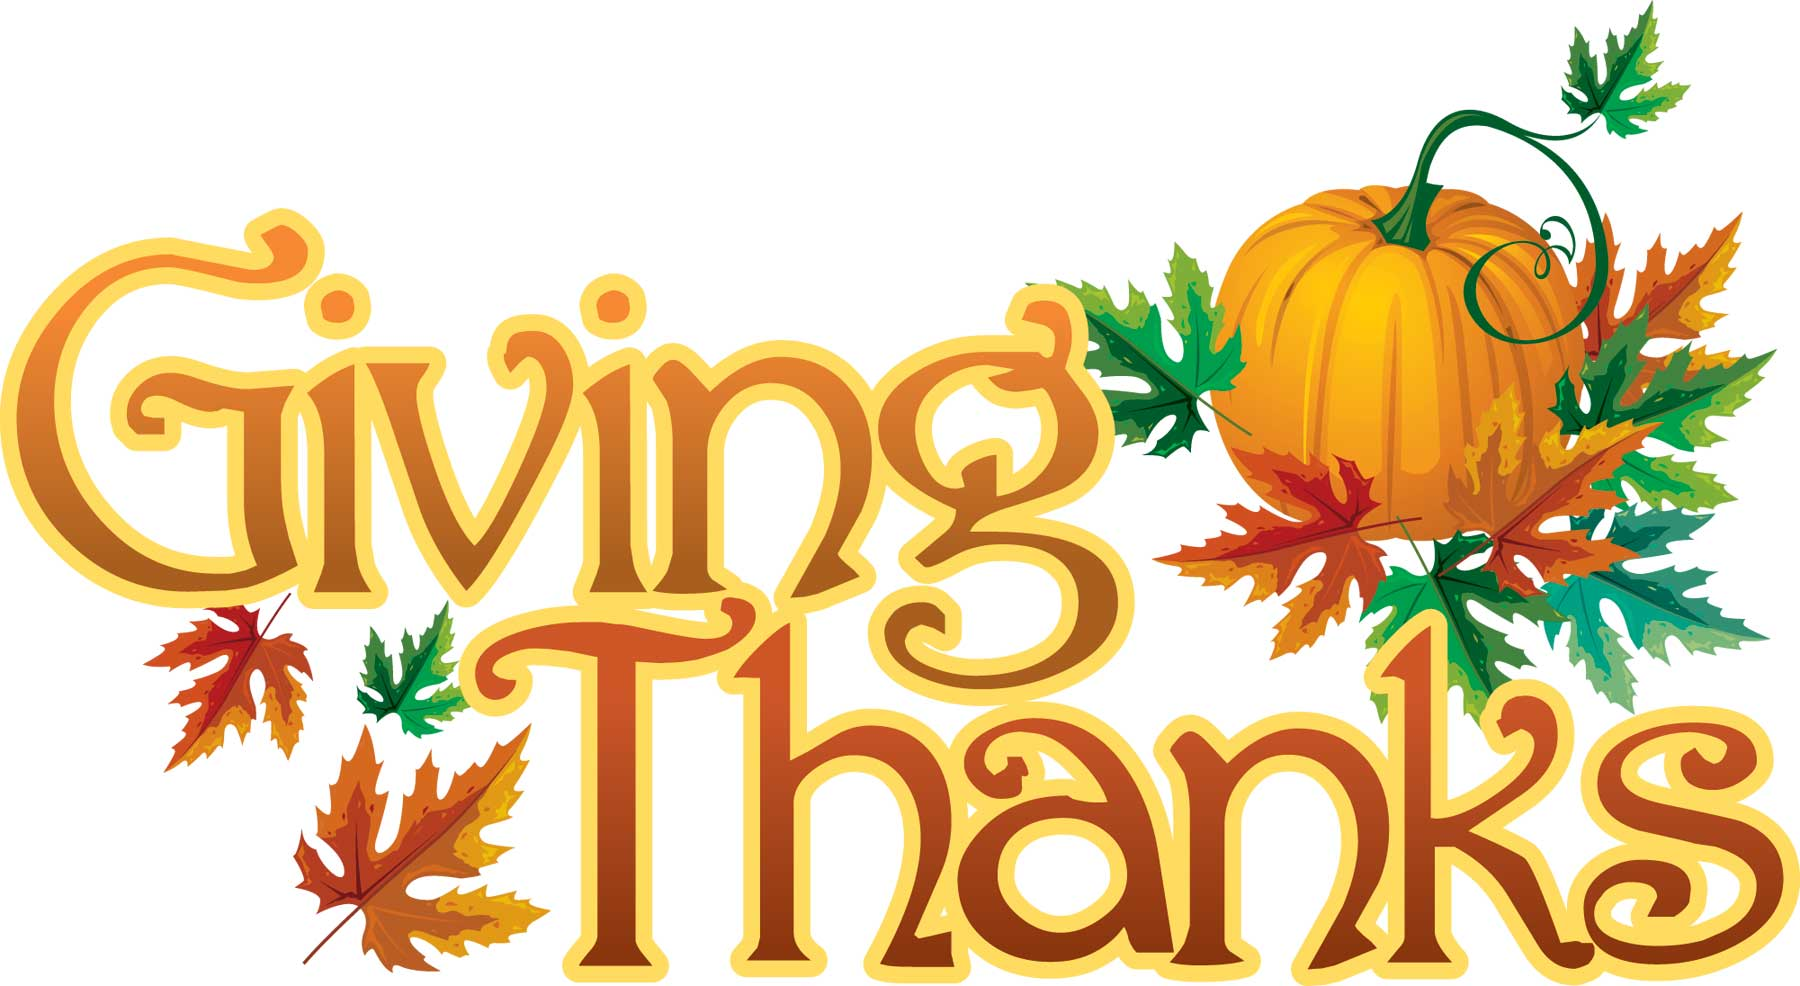 1800x986 Giving Thanks To Our Supporters